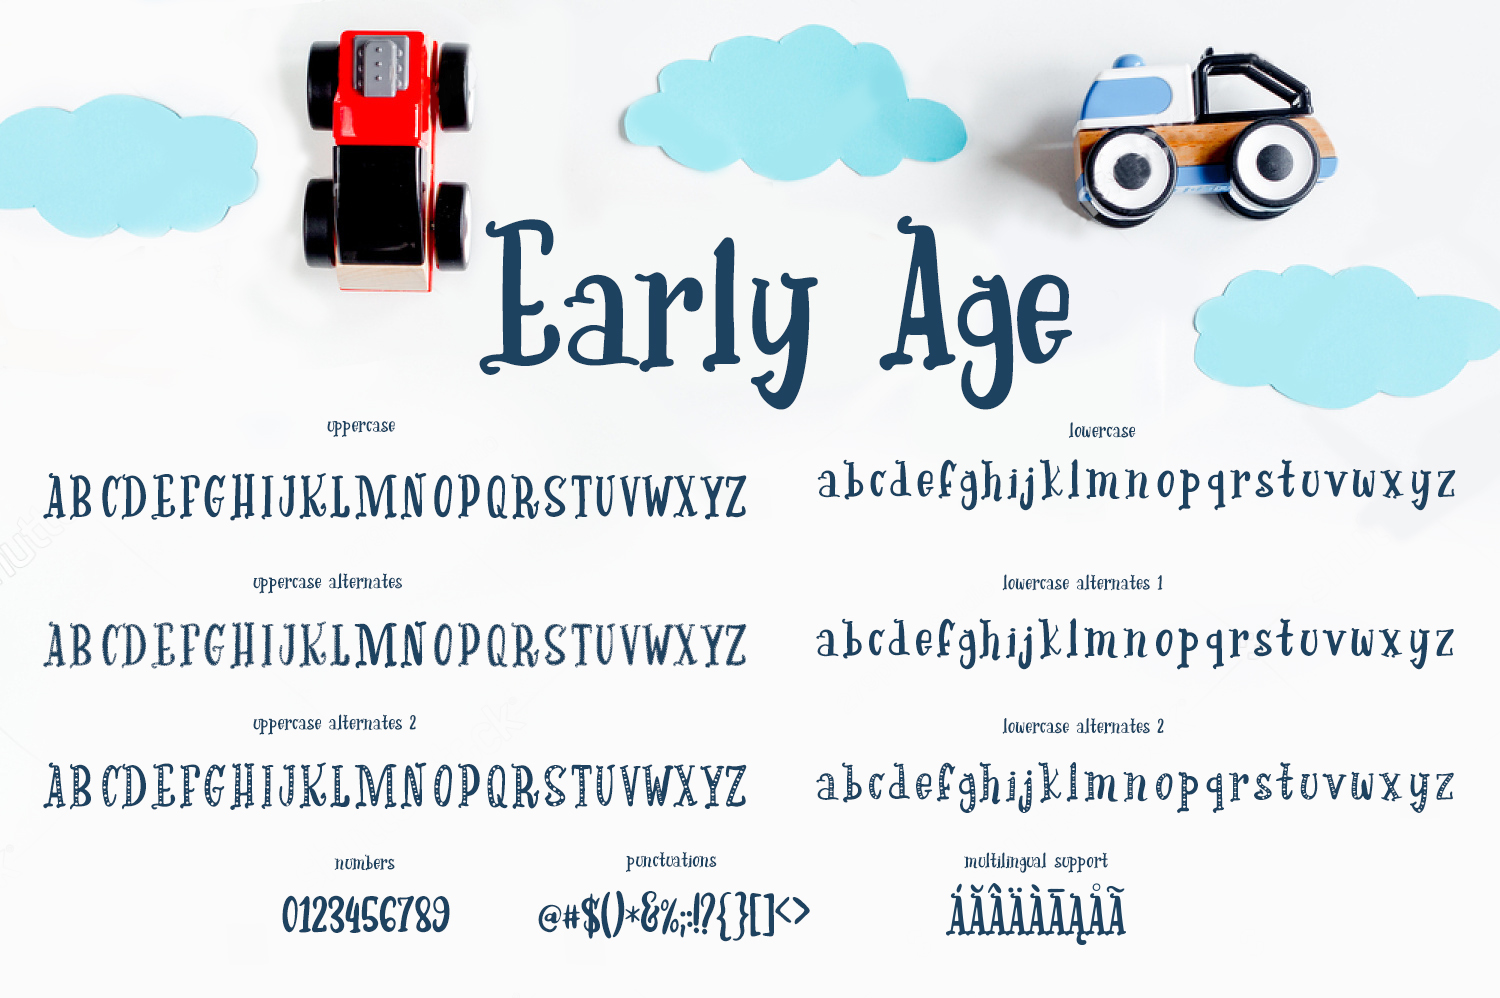 Early Age Font By tregubova.jul Image 3